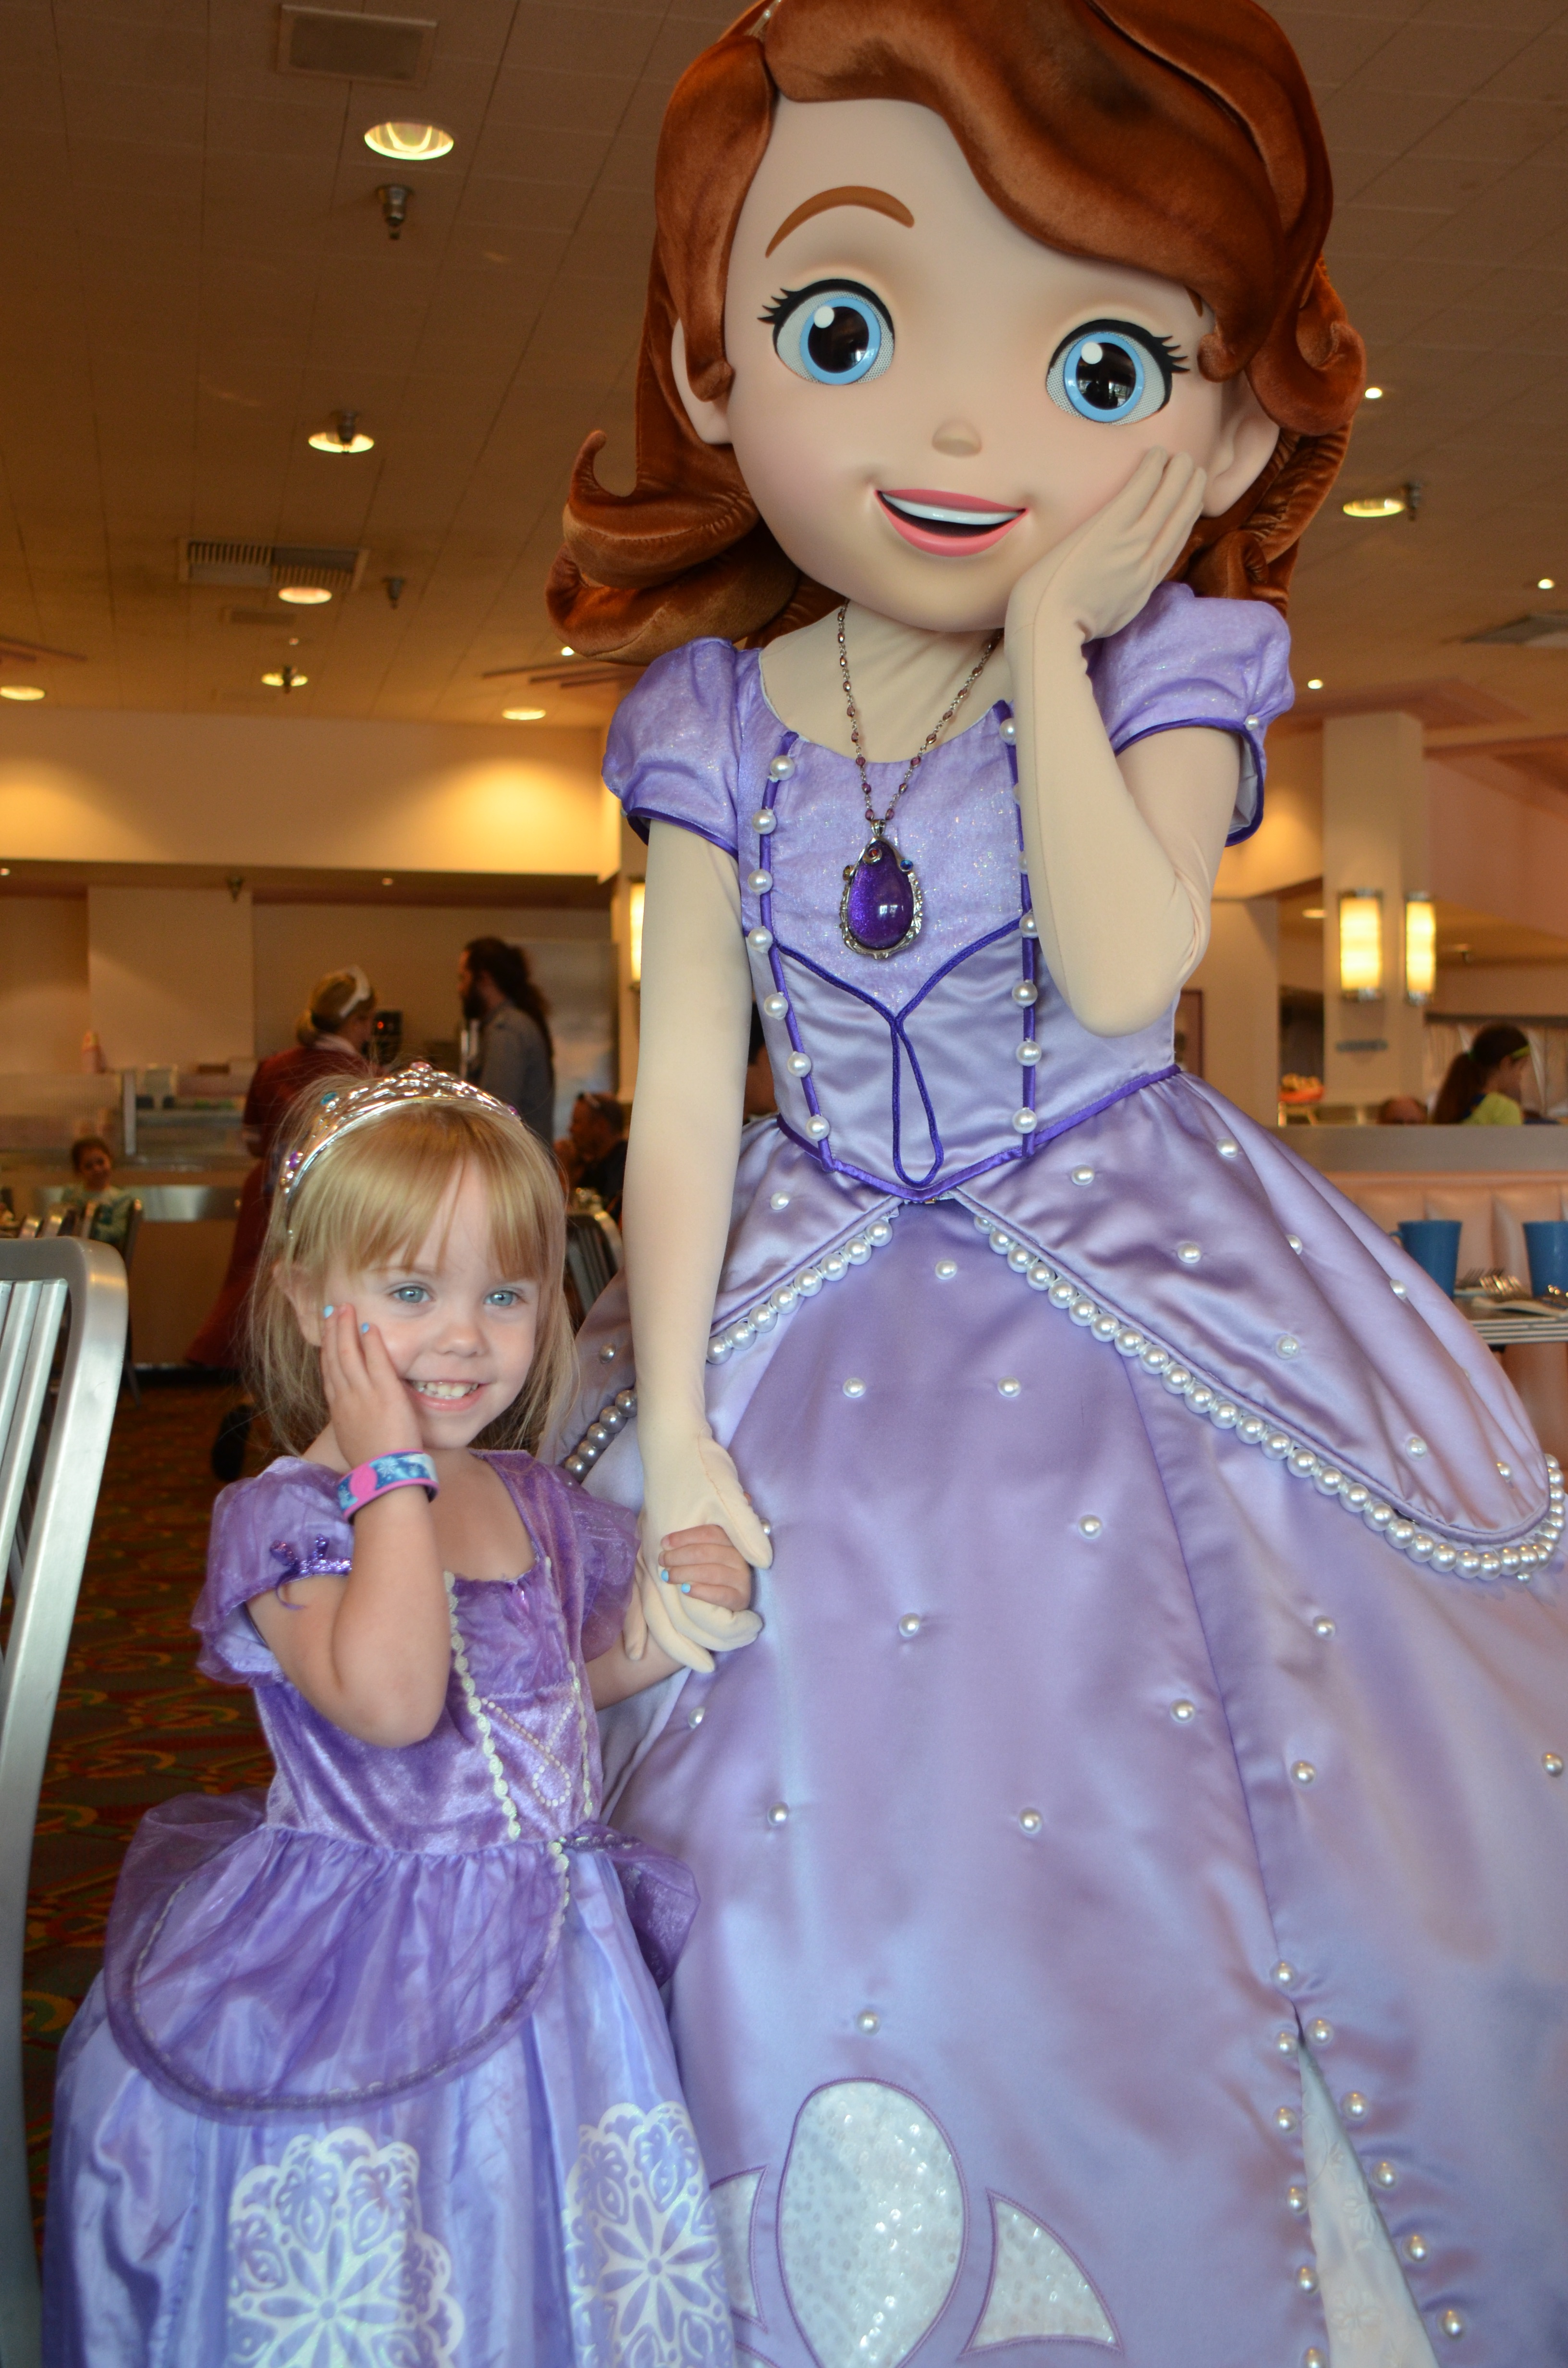 Meet sofia at disney the mom approved blog sofia at hollywood and vine 3 m4hsunfo